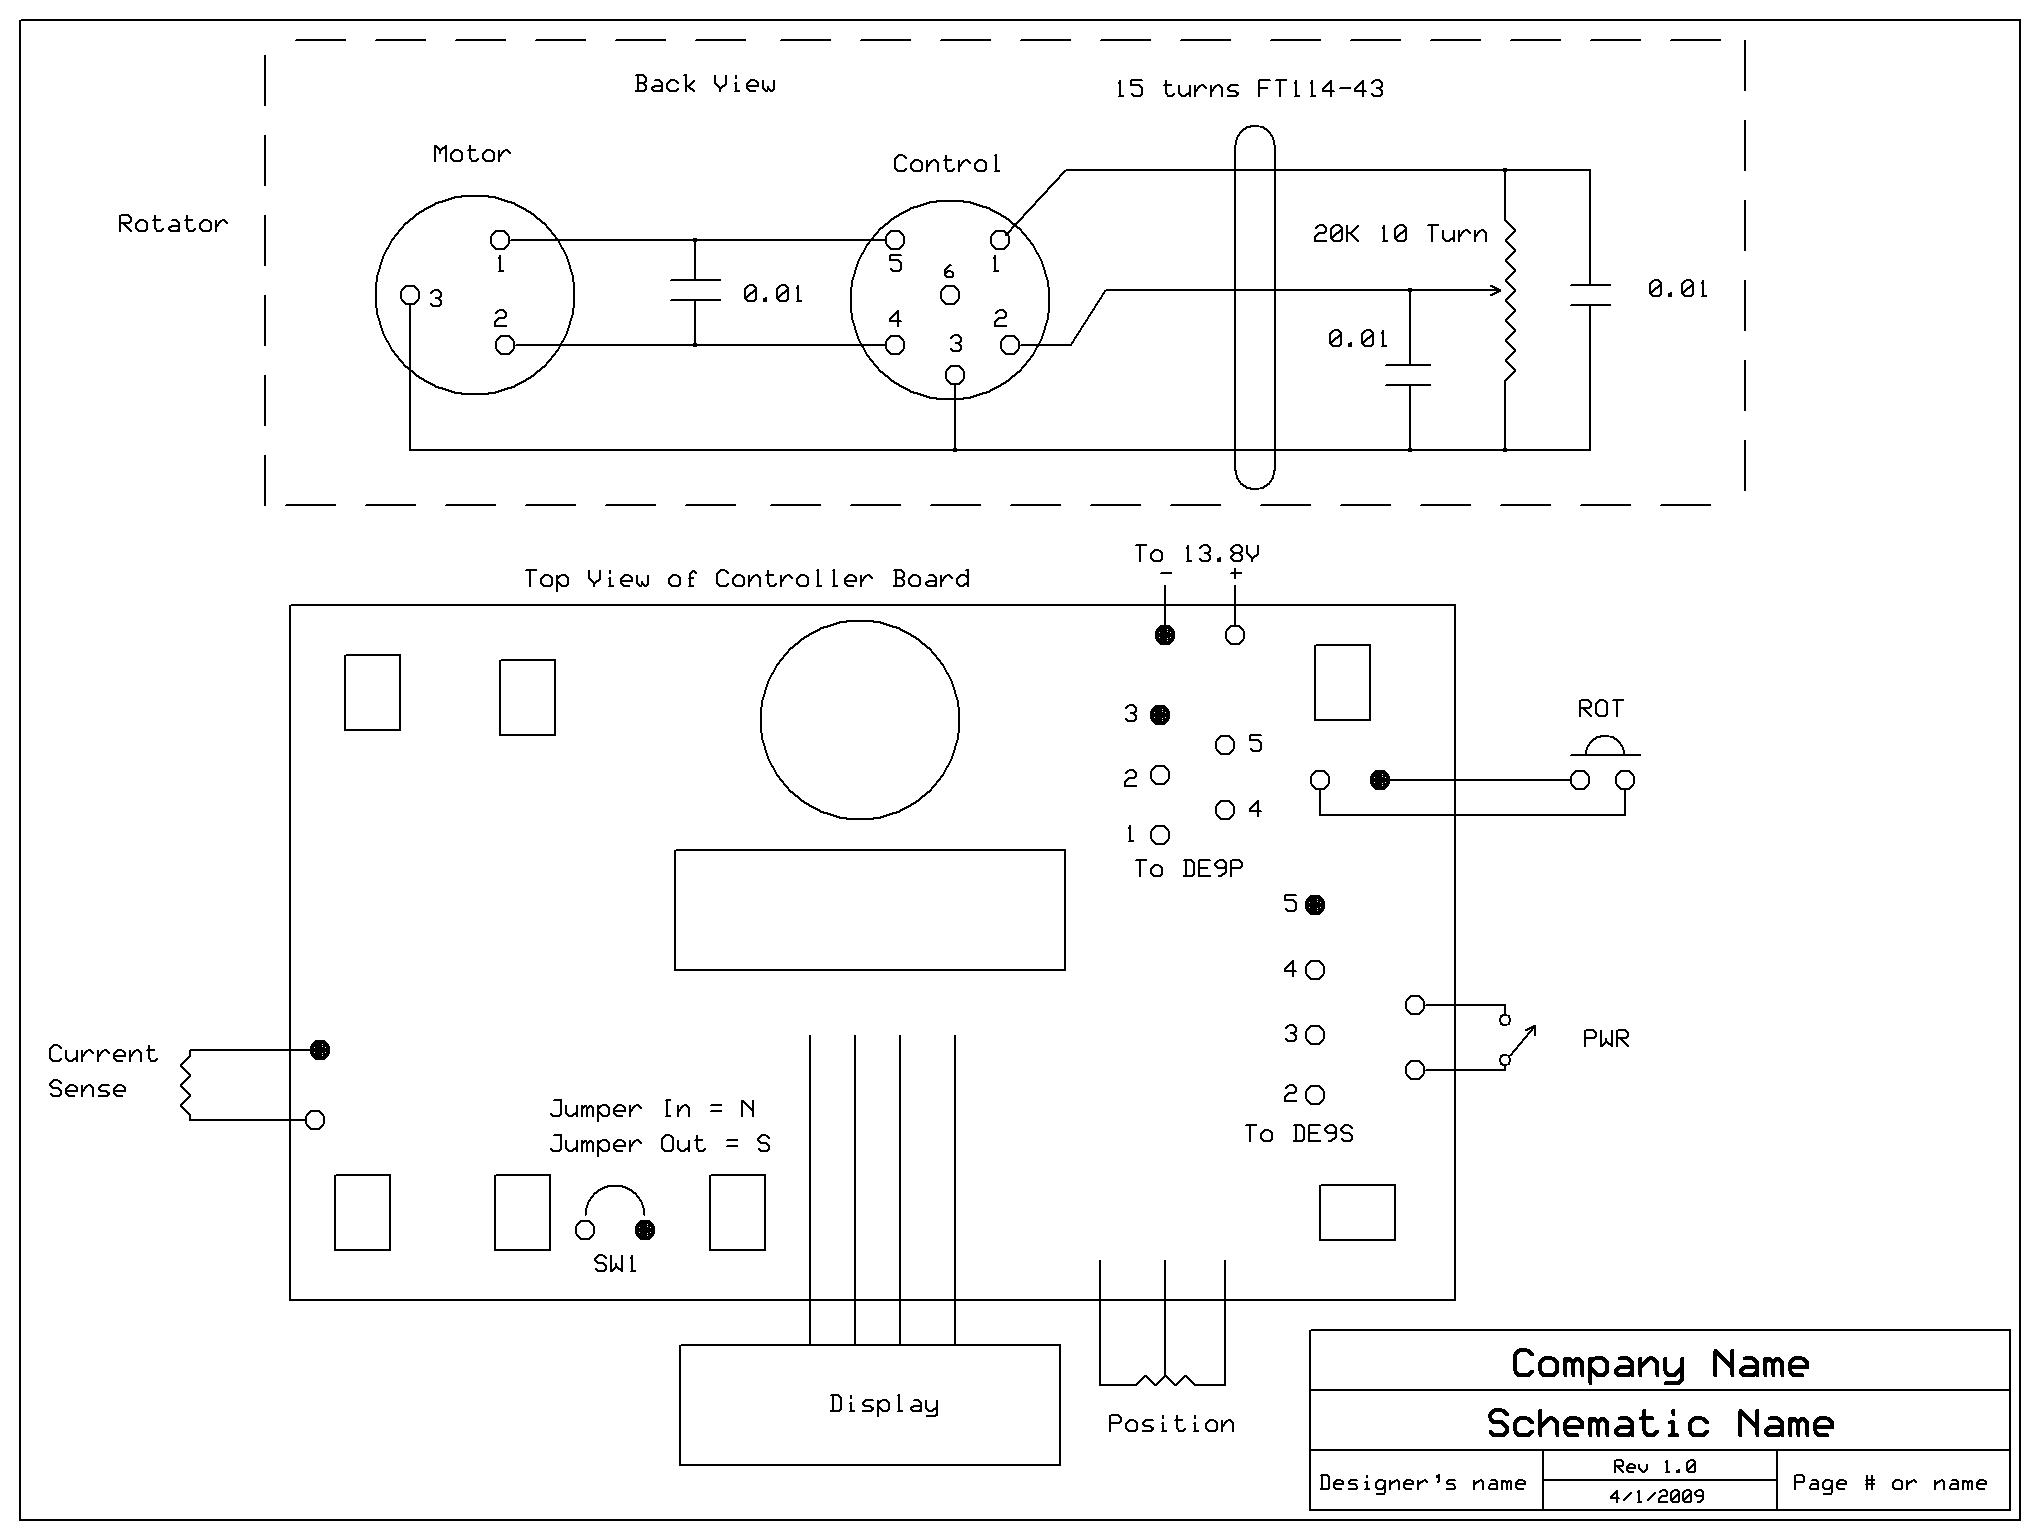 Rotator_Controller_Block antenna rotator antenna rotor wiring diagram at n-0.co